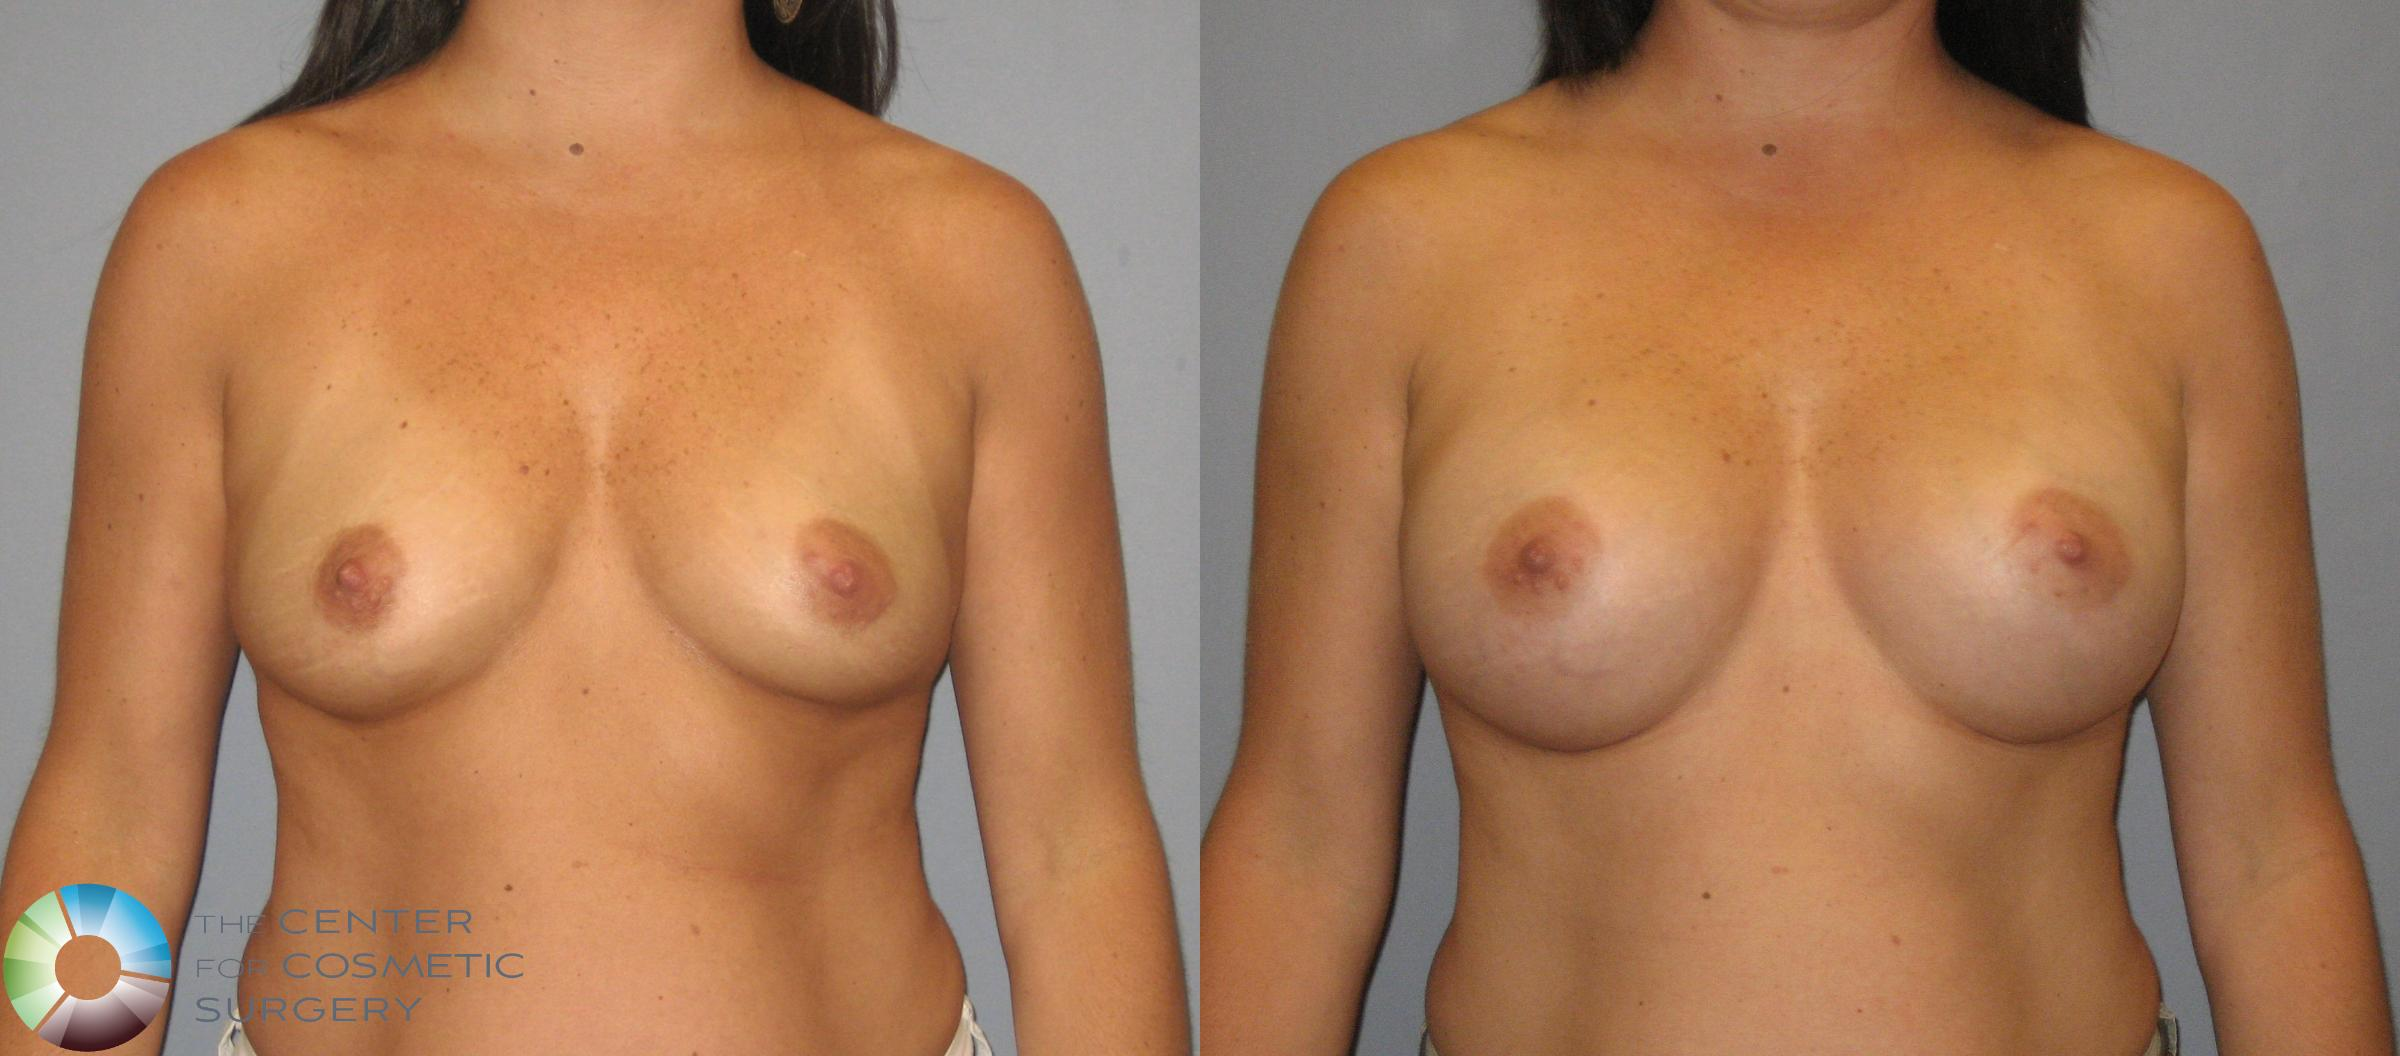 Breast Augmentation Case 419 Before & After View #1 | Golden, CO | The Center for Cosmetic Surgery